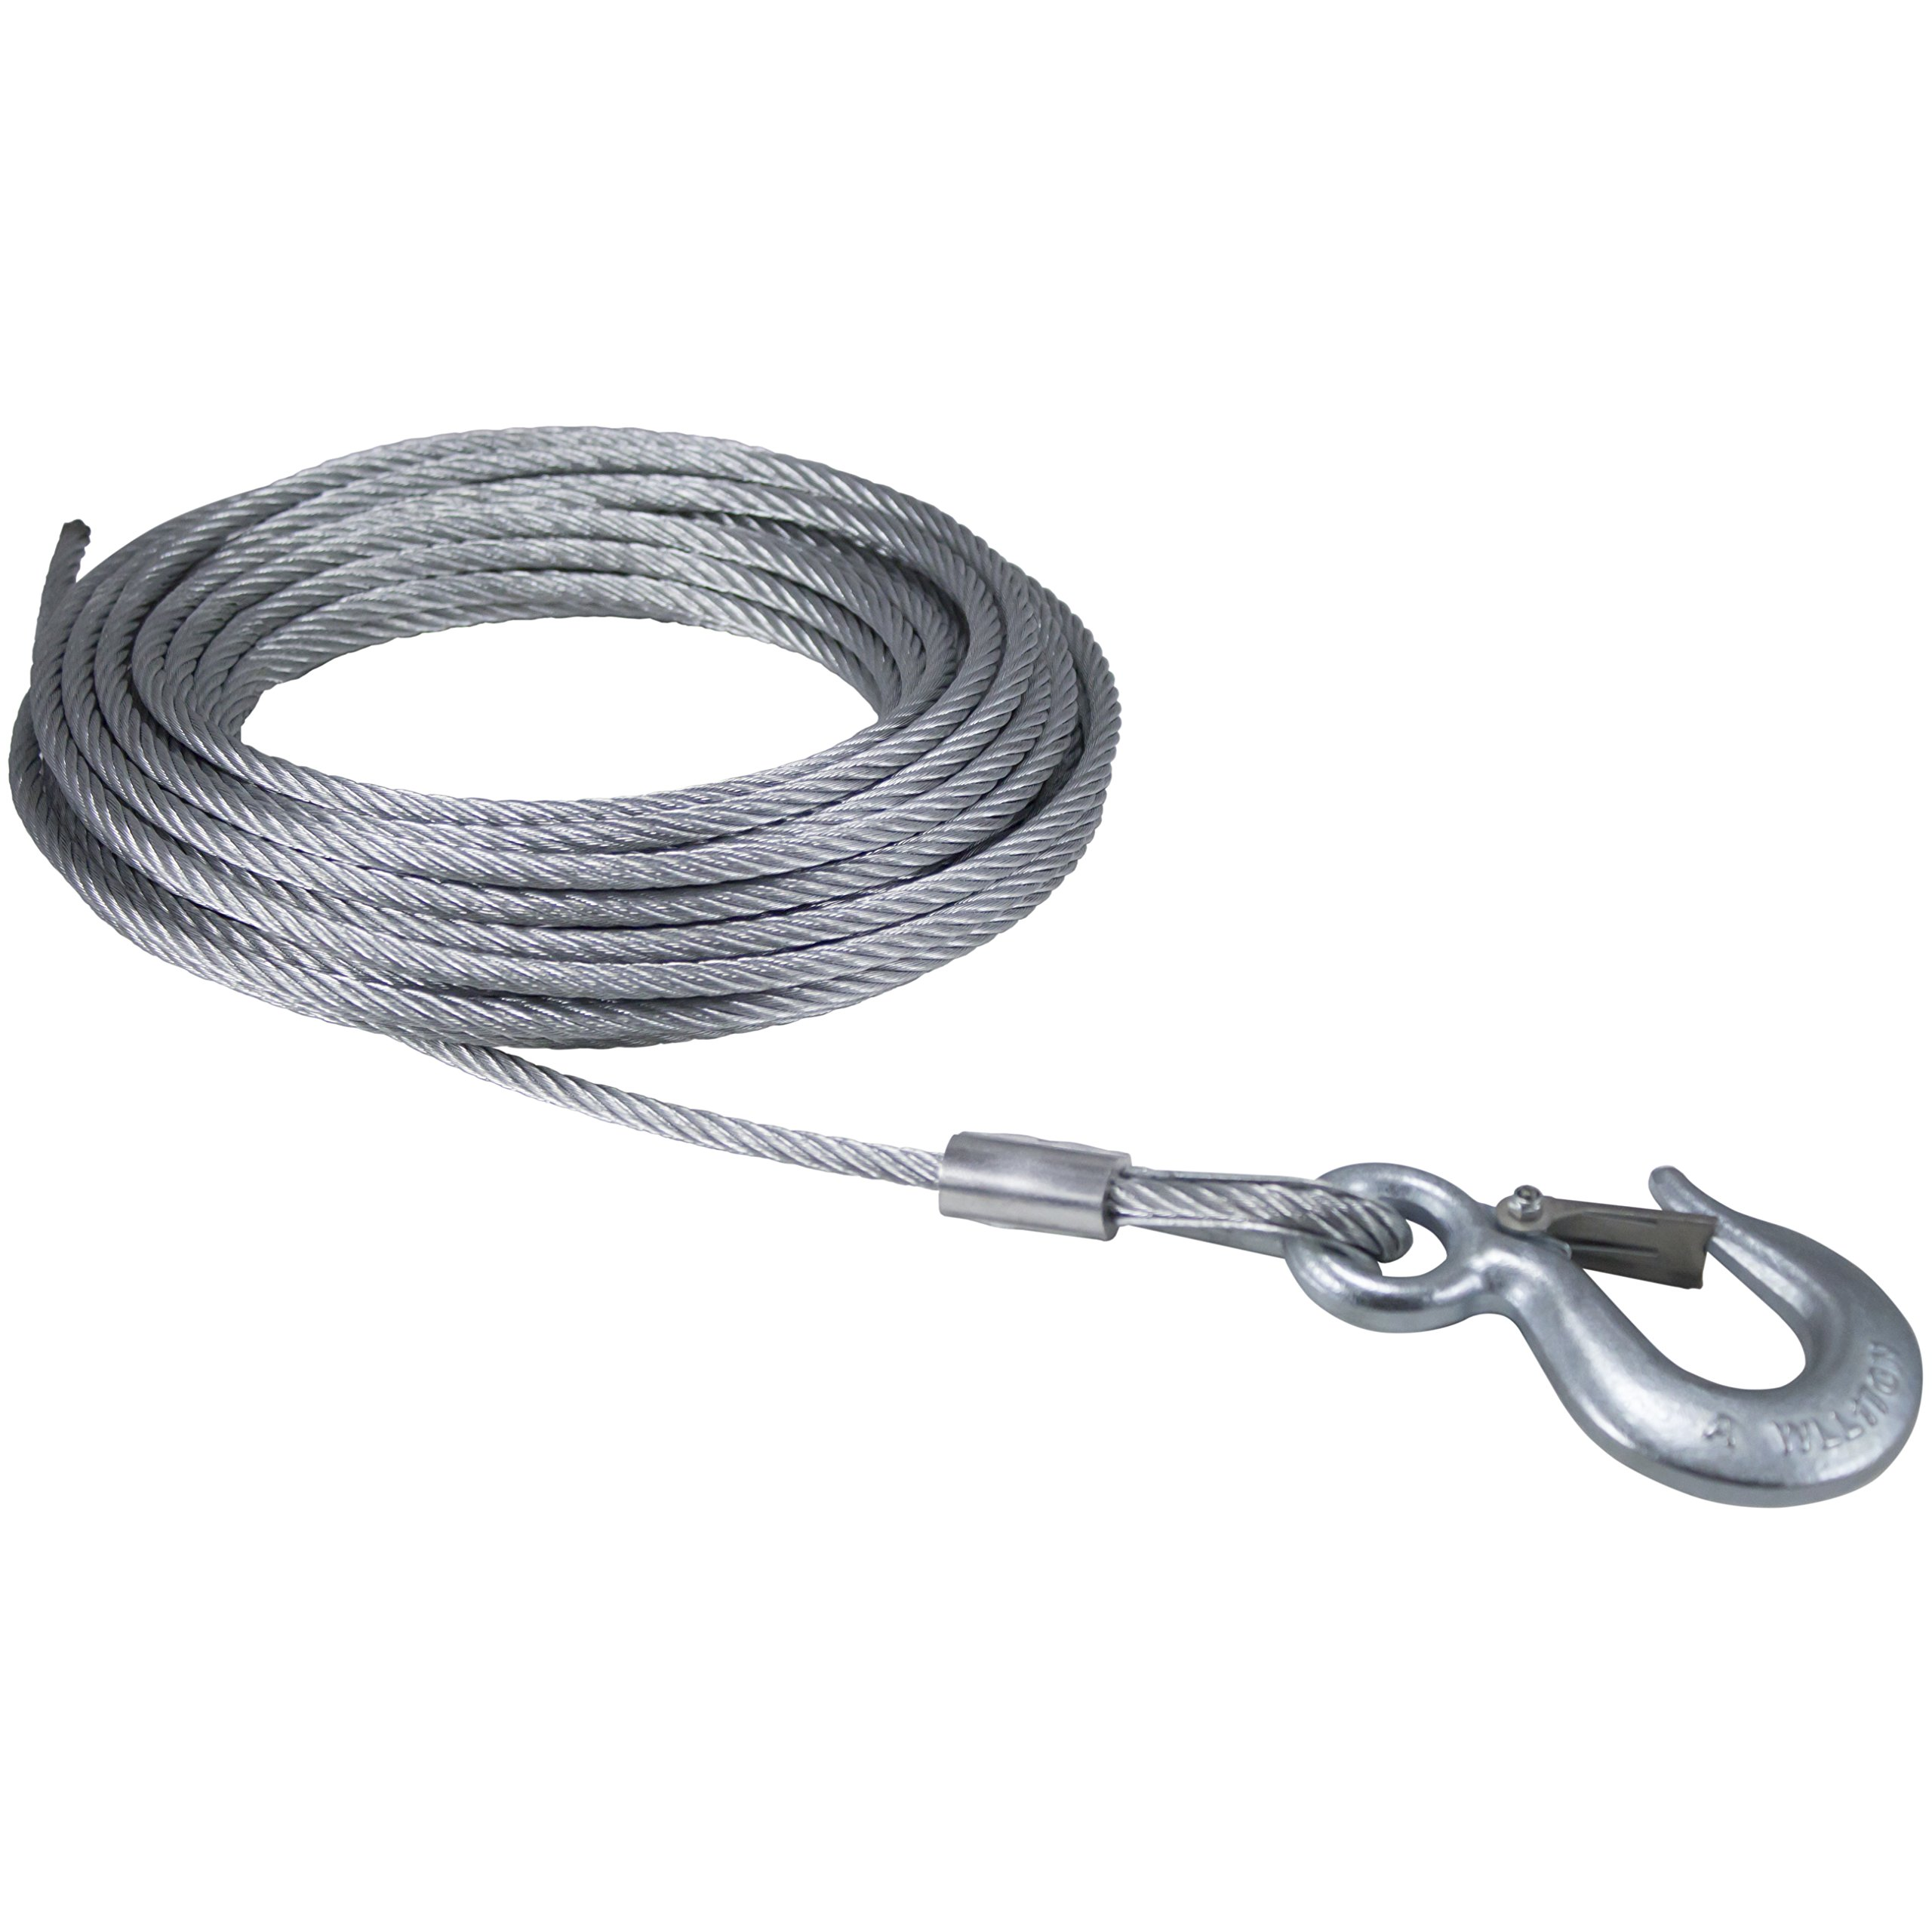 Dutton Lainson 6524 Cable with Hook 1/4- Inch x 50- Feet